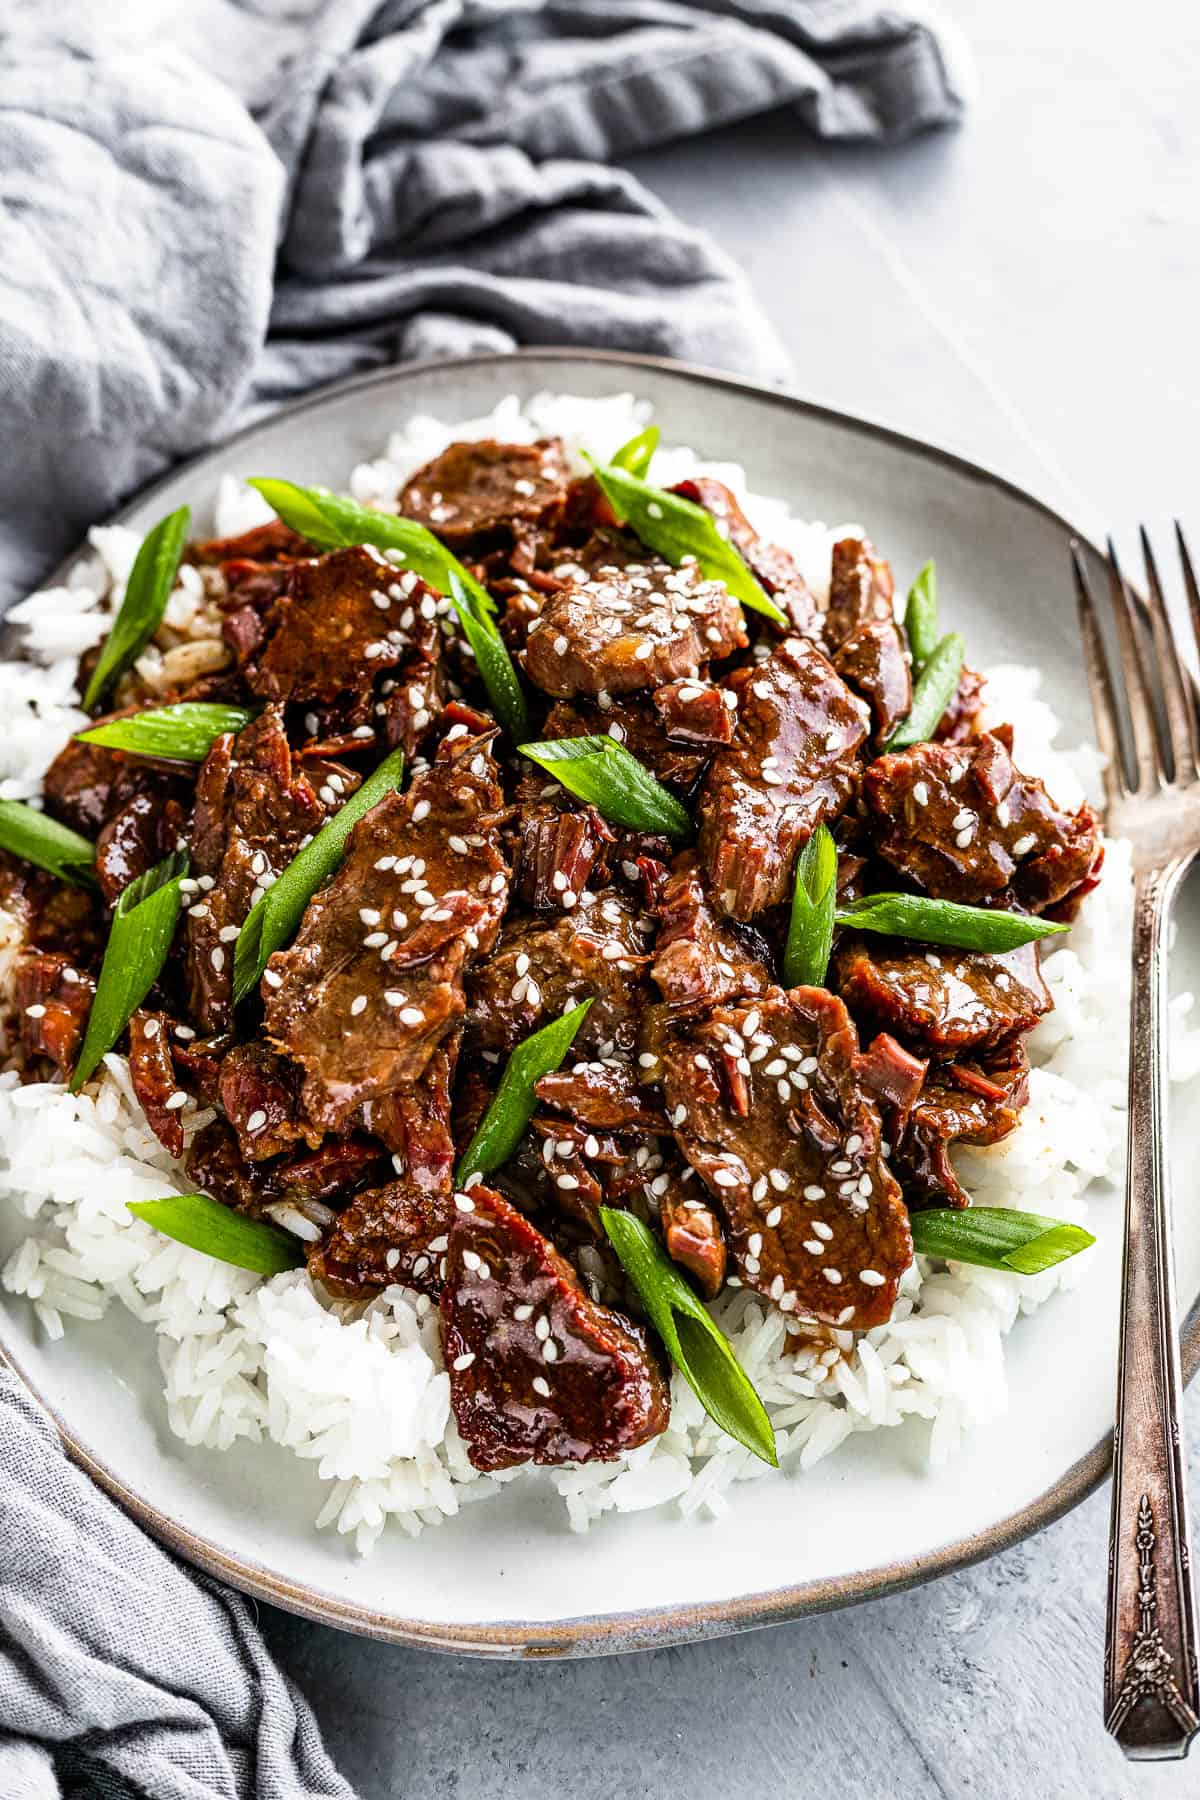 A Plate of Instant Pot Mongolian Beef with Green Onions over Rice